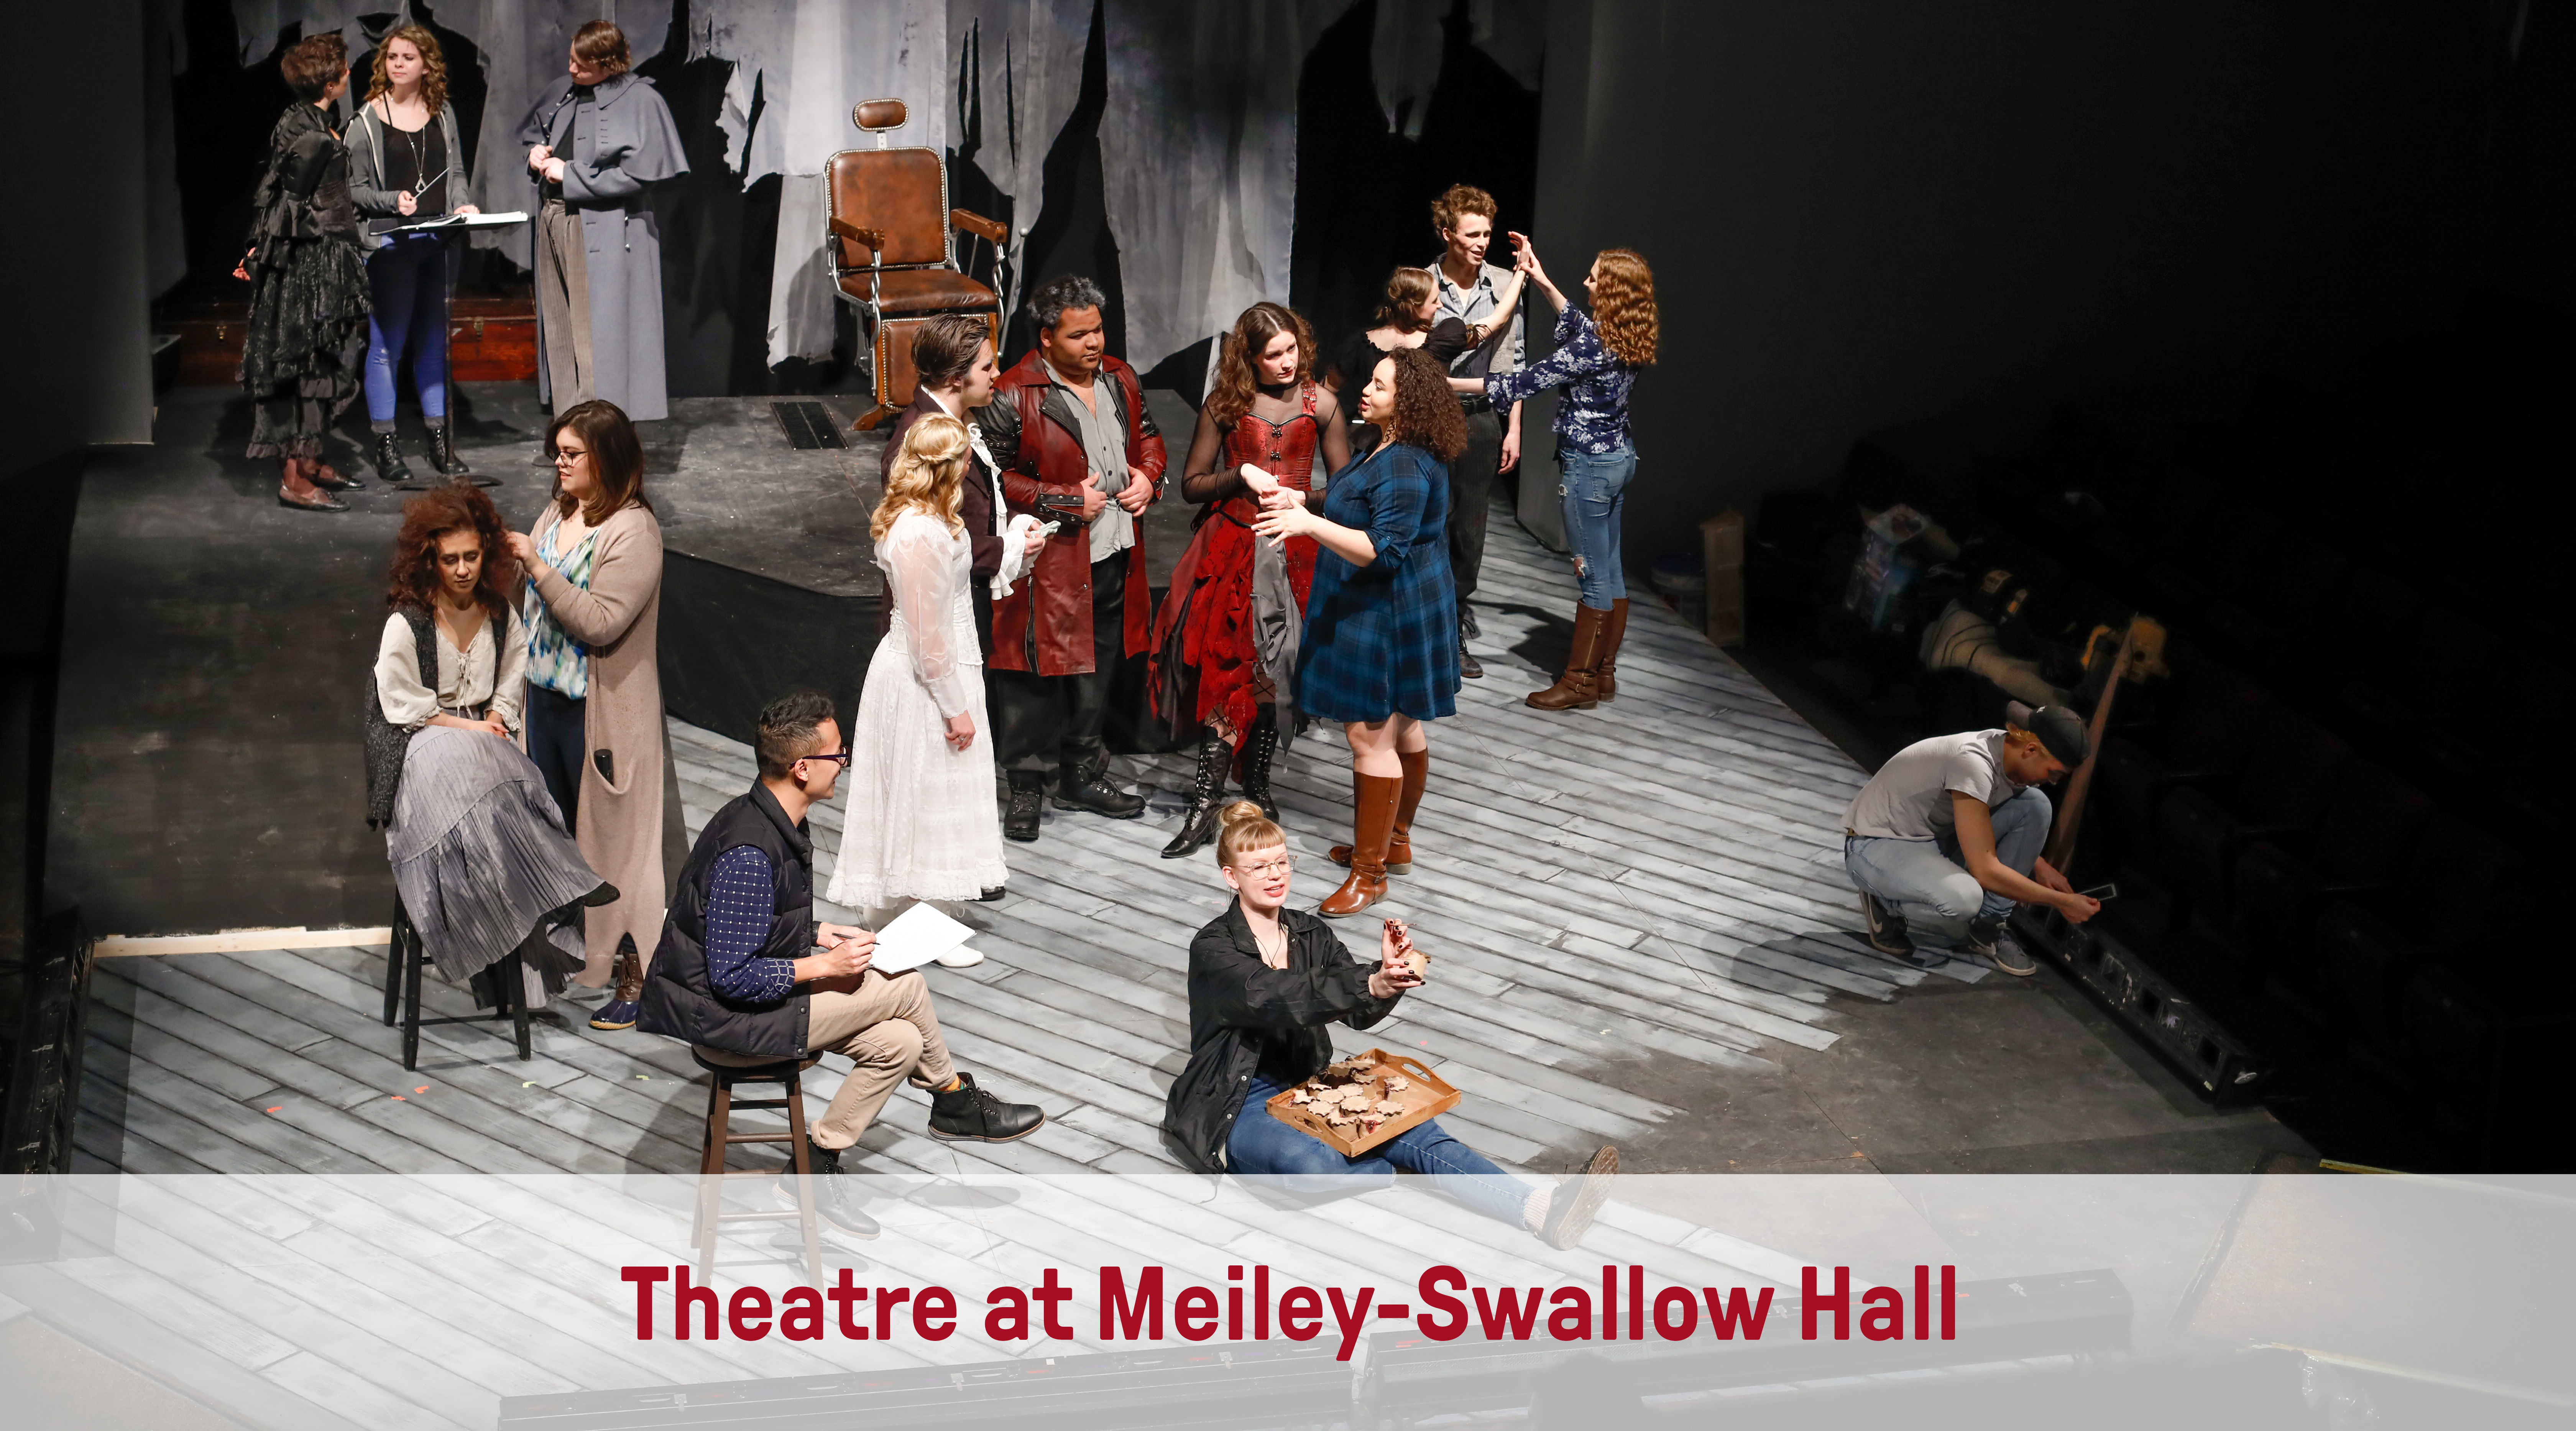 Theatre at Meiley-Swallow – Meiley-Swallow Hall